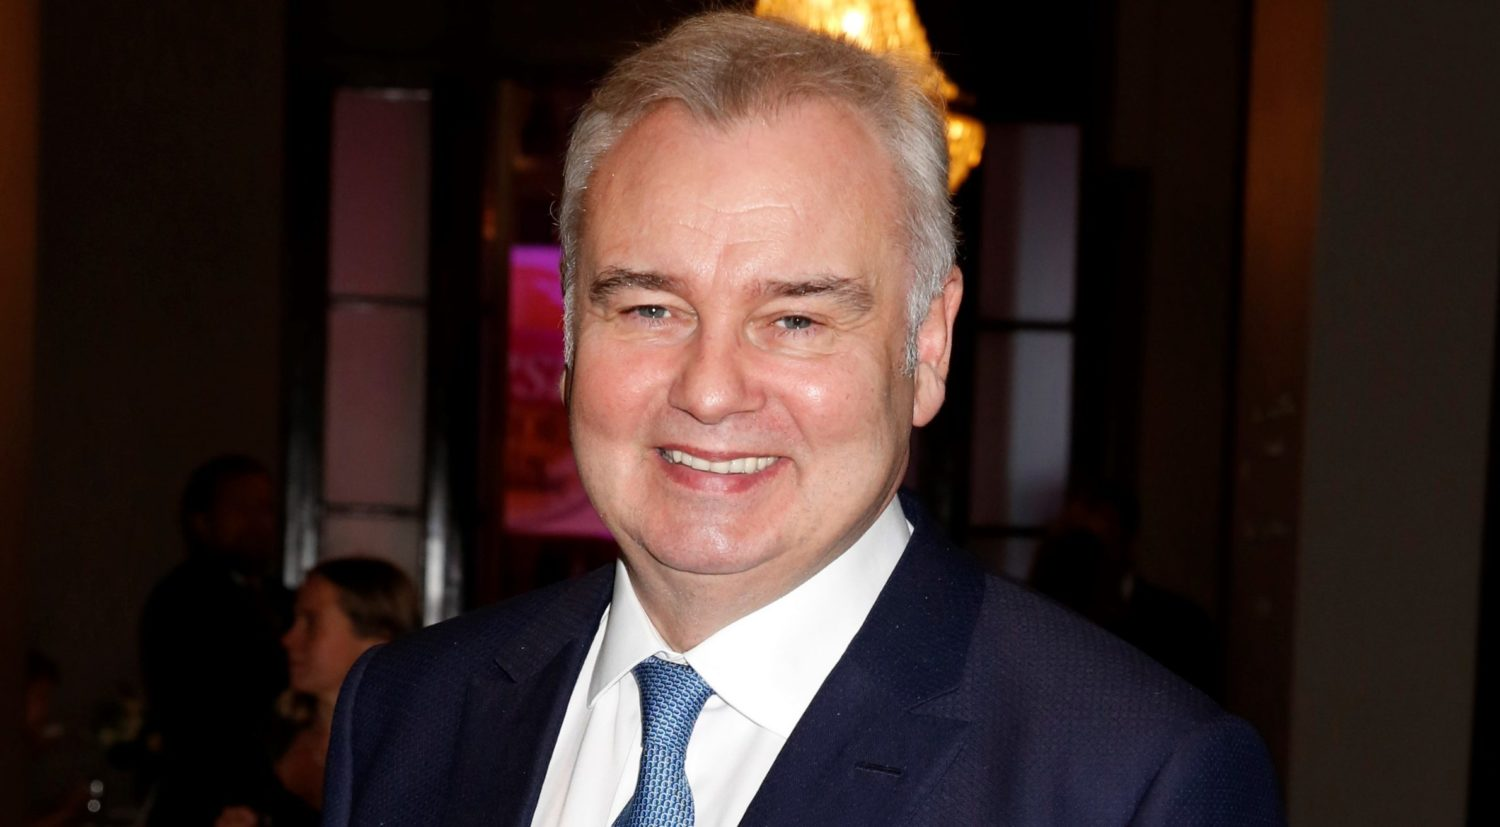 Eamonn Holmes fans gush over 'stunning' daughter in happy birthday snap